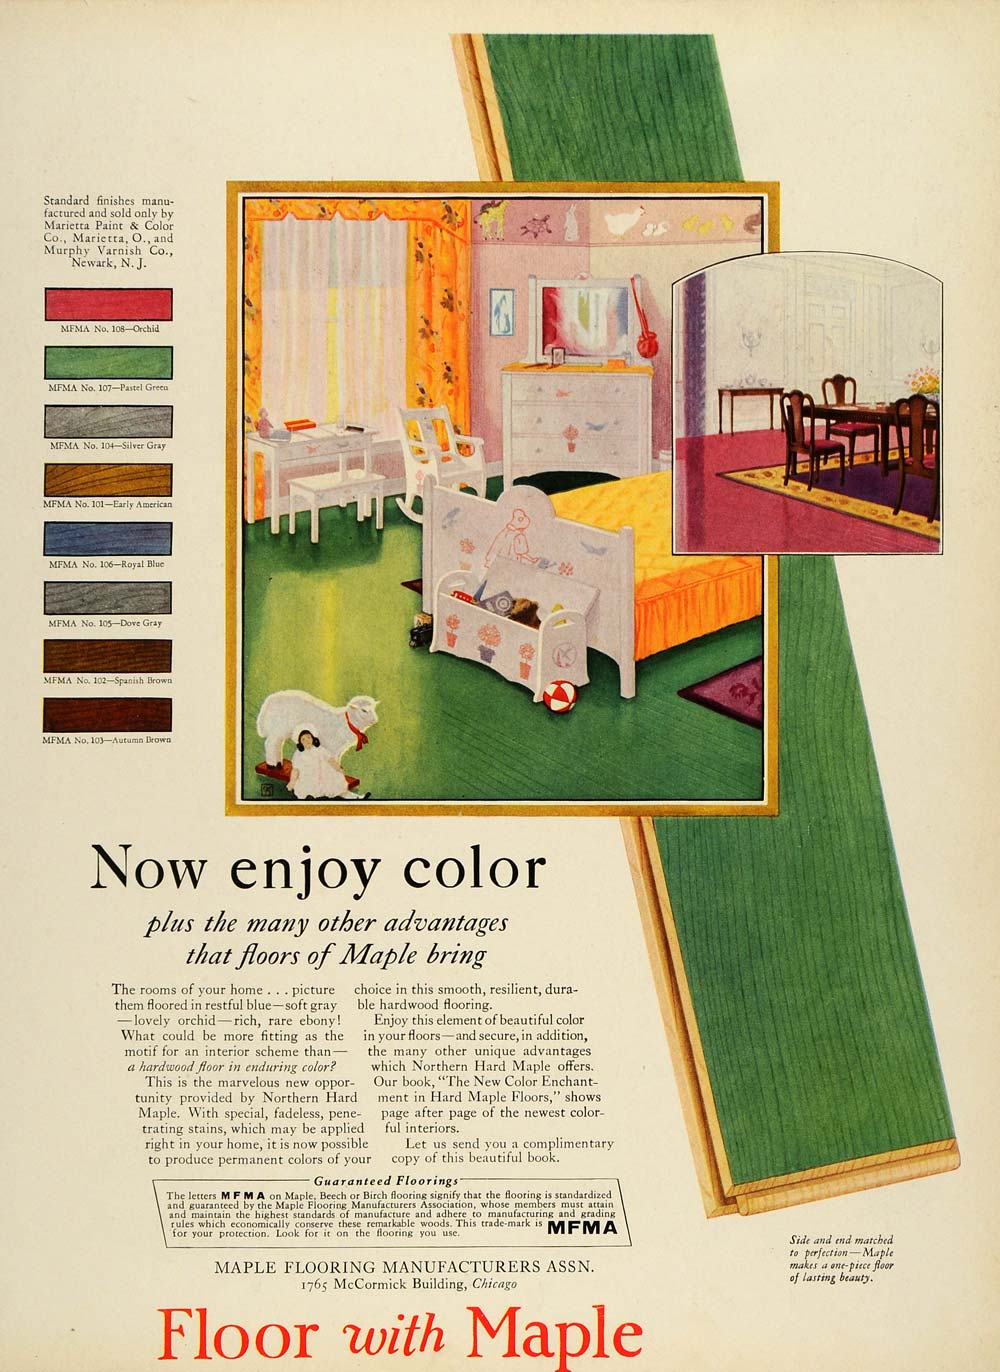 1928 Ad Maple Floor Flooring Association Nursery Baby Room Pastel Green N HB2